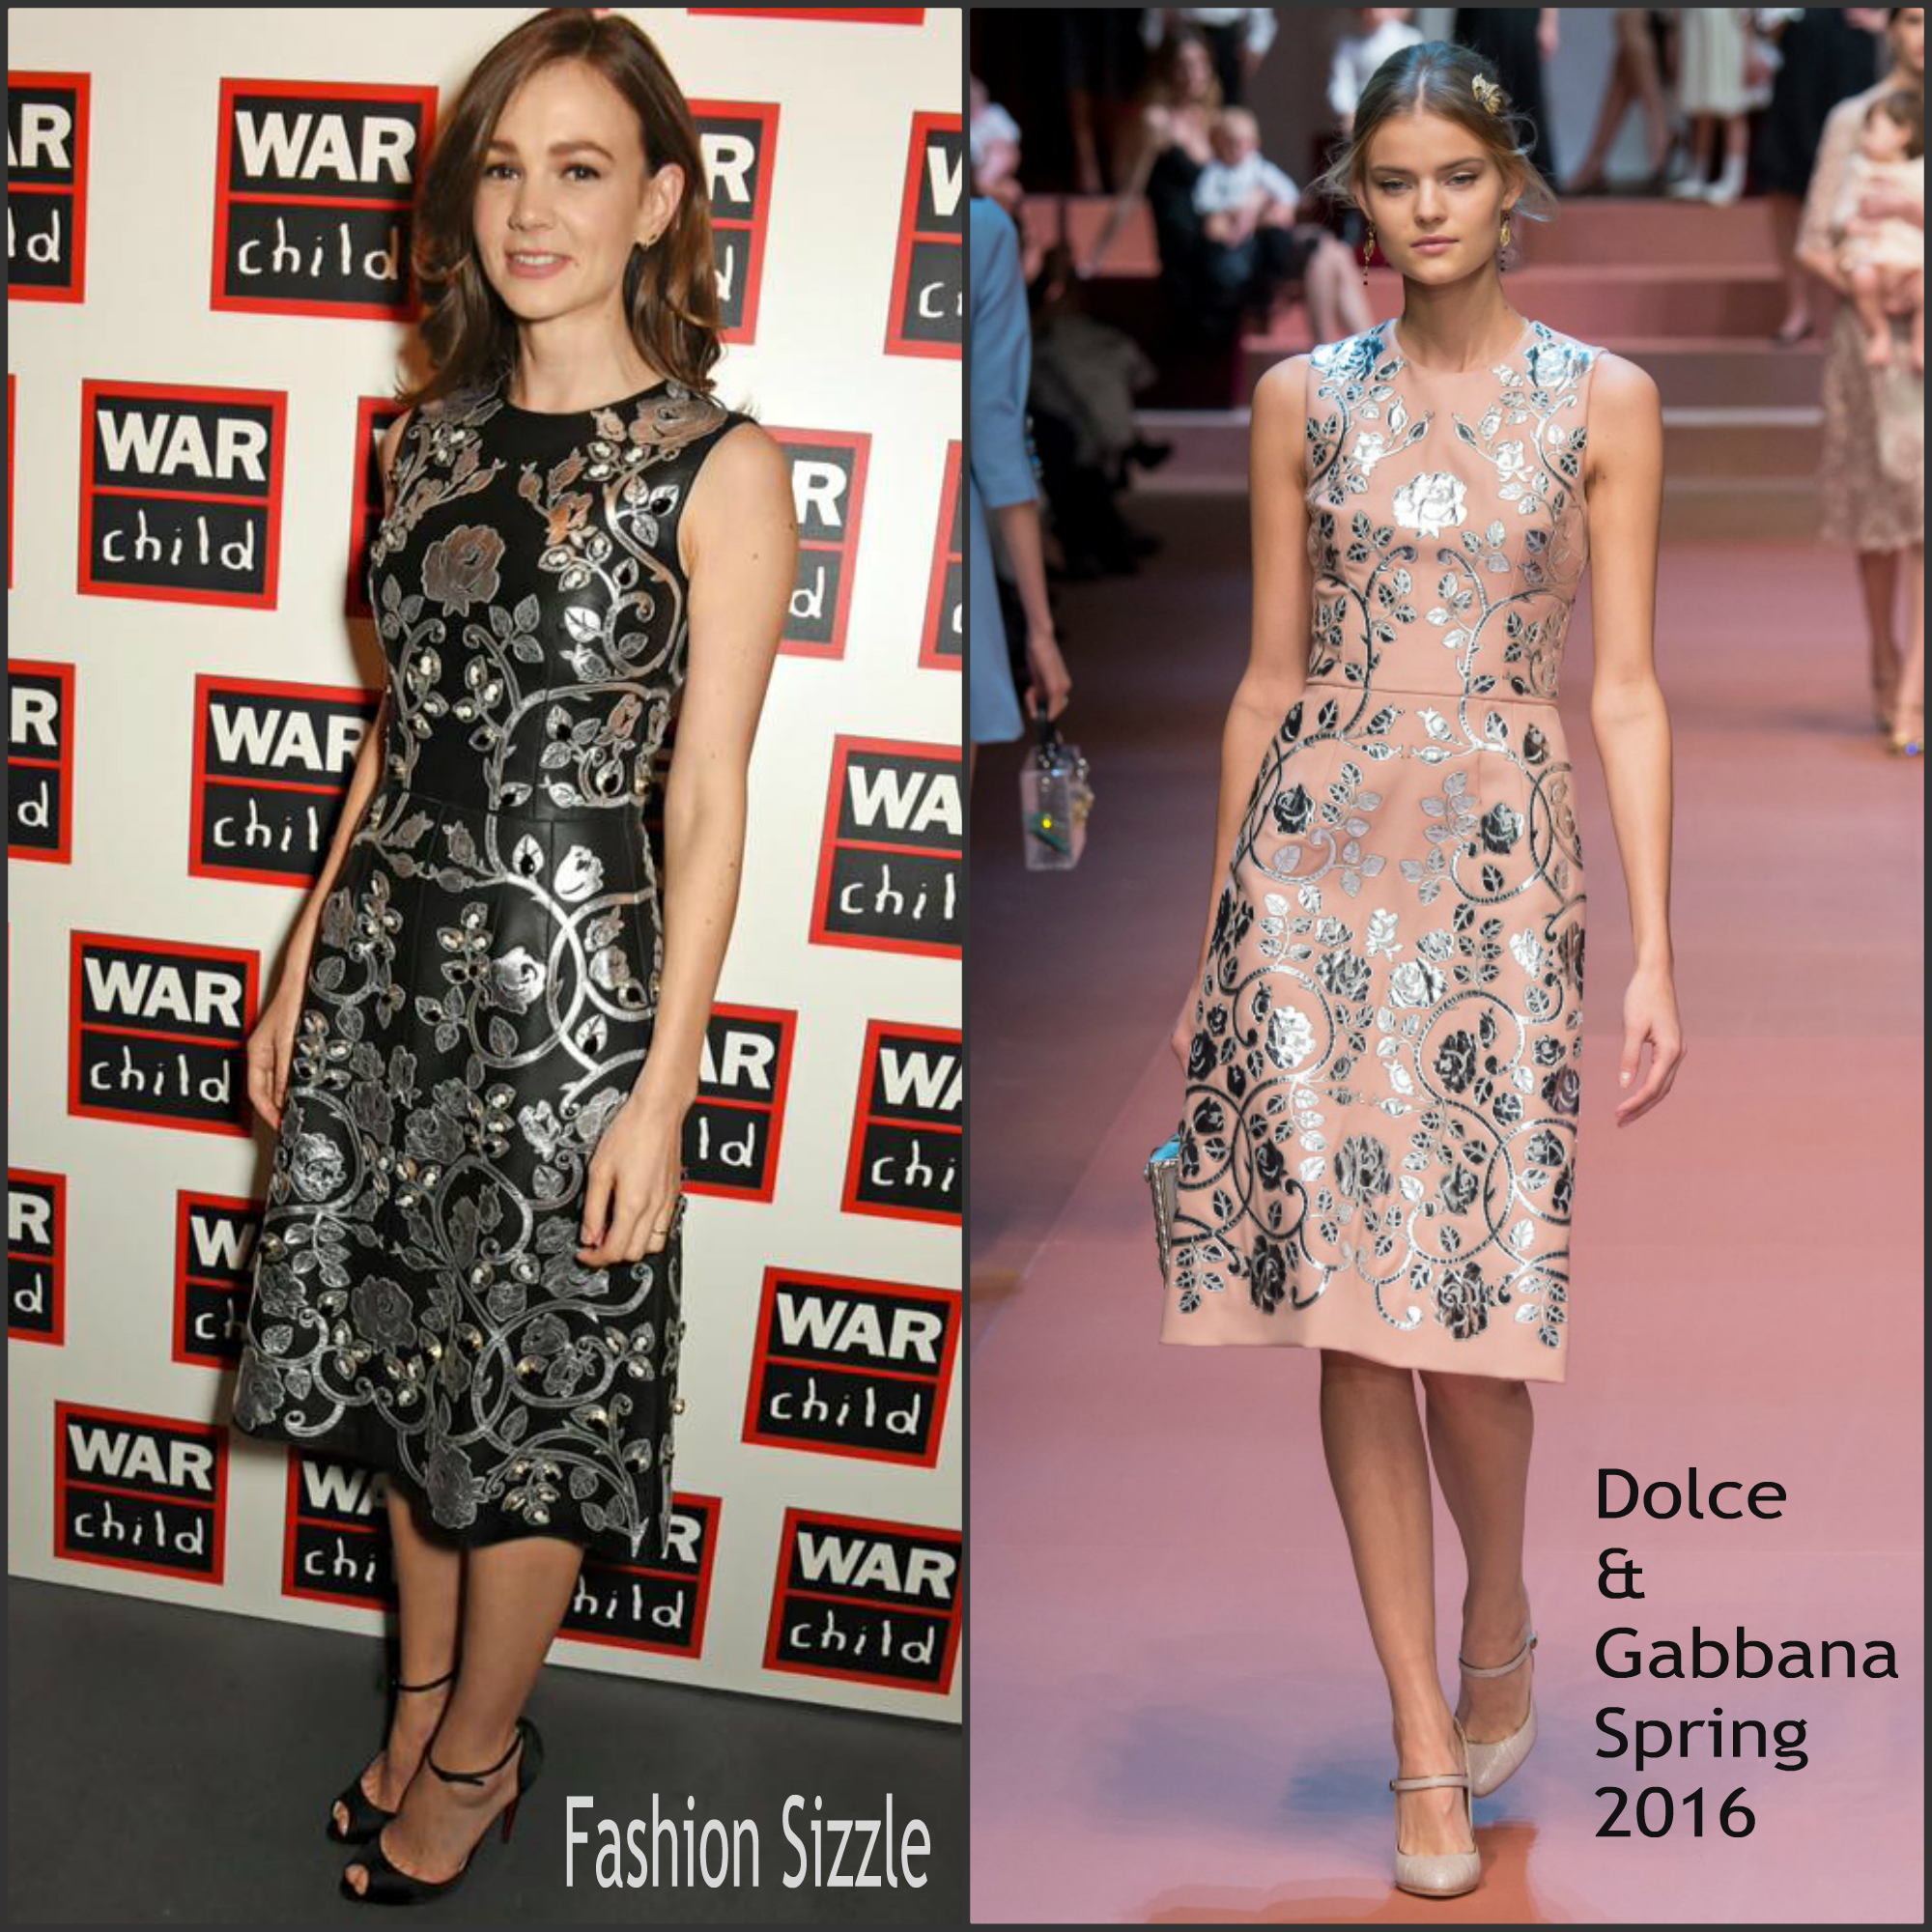 carey-mulligan-in-dolce-gabbana-the-war-child-winter-wassail